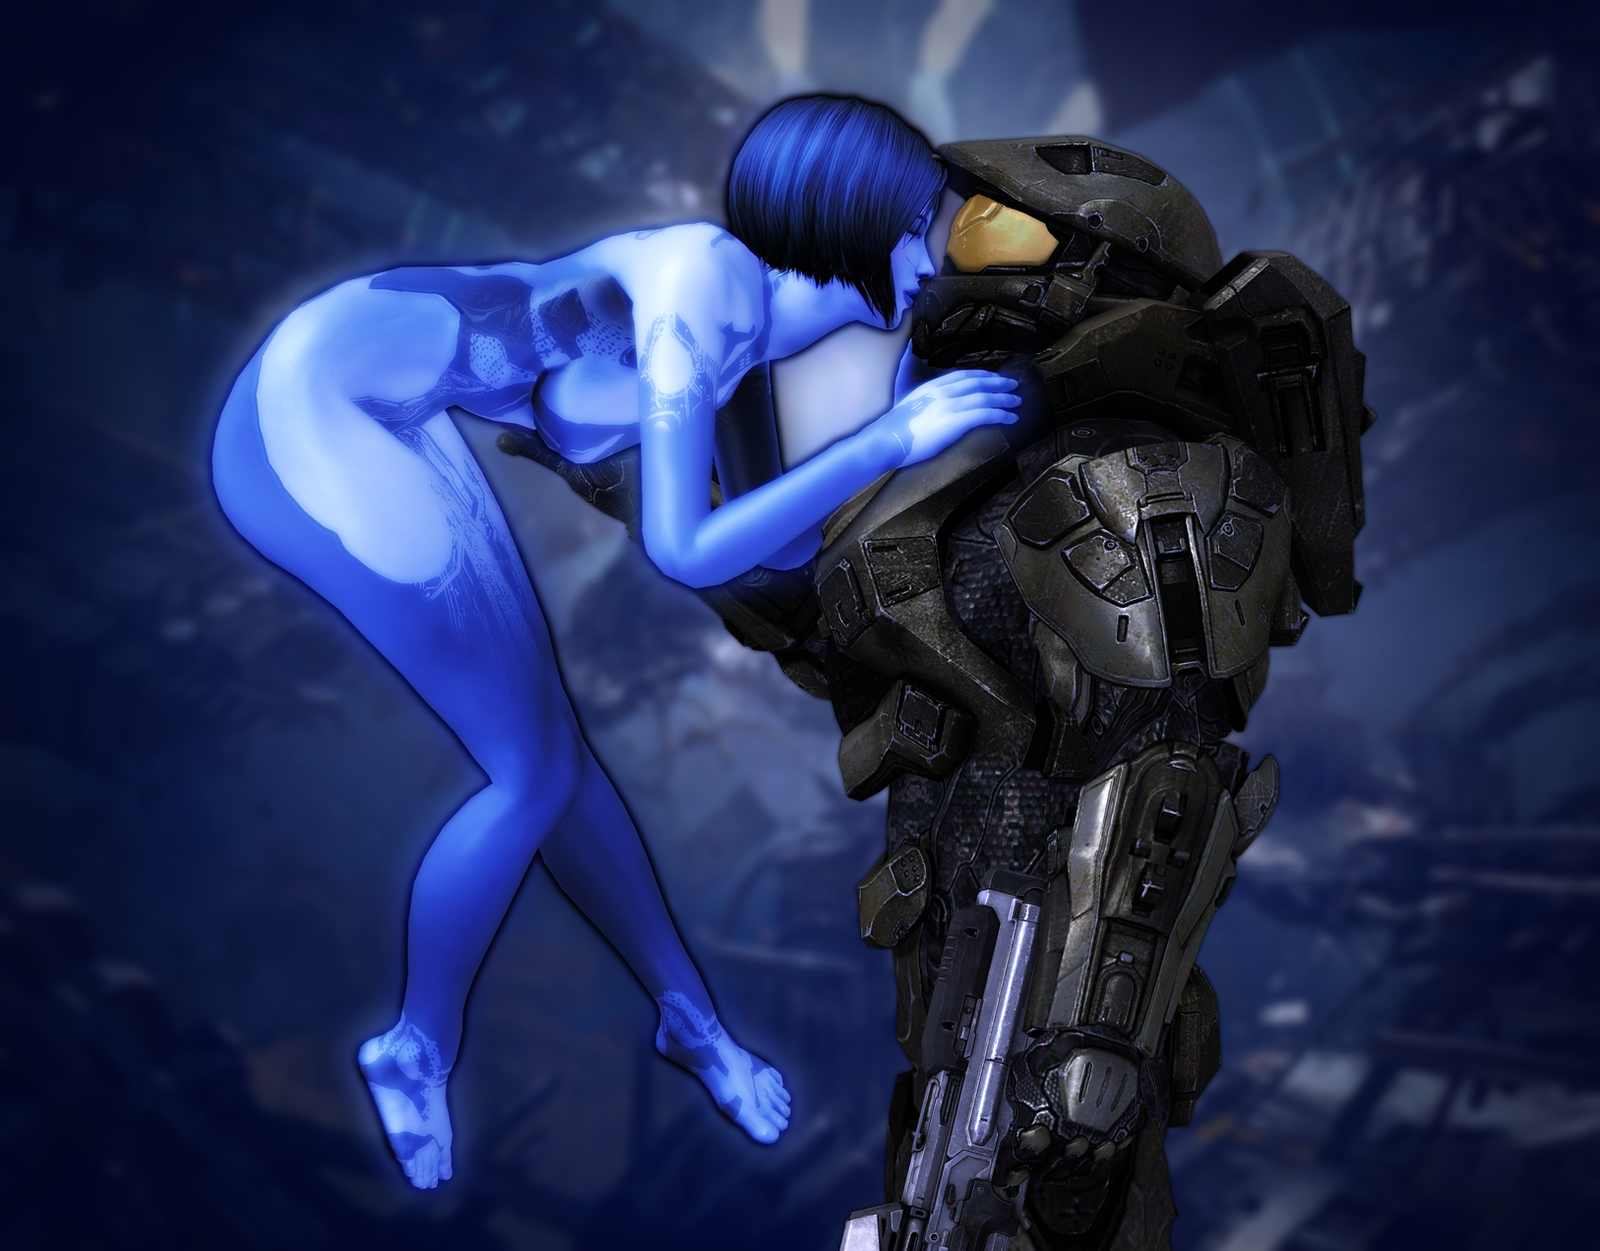 Cortana and master chief nude softcore download